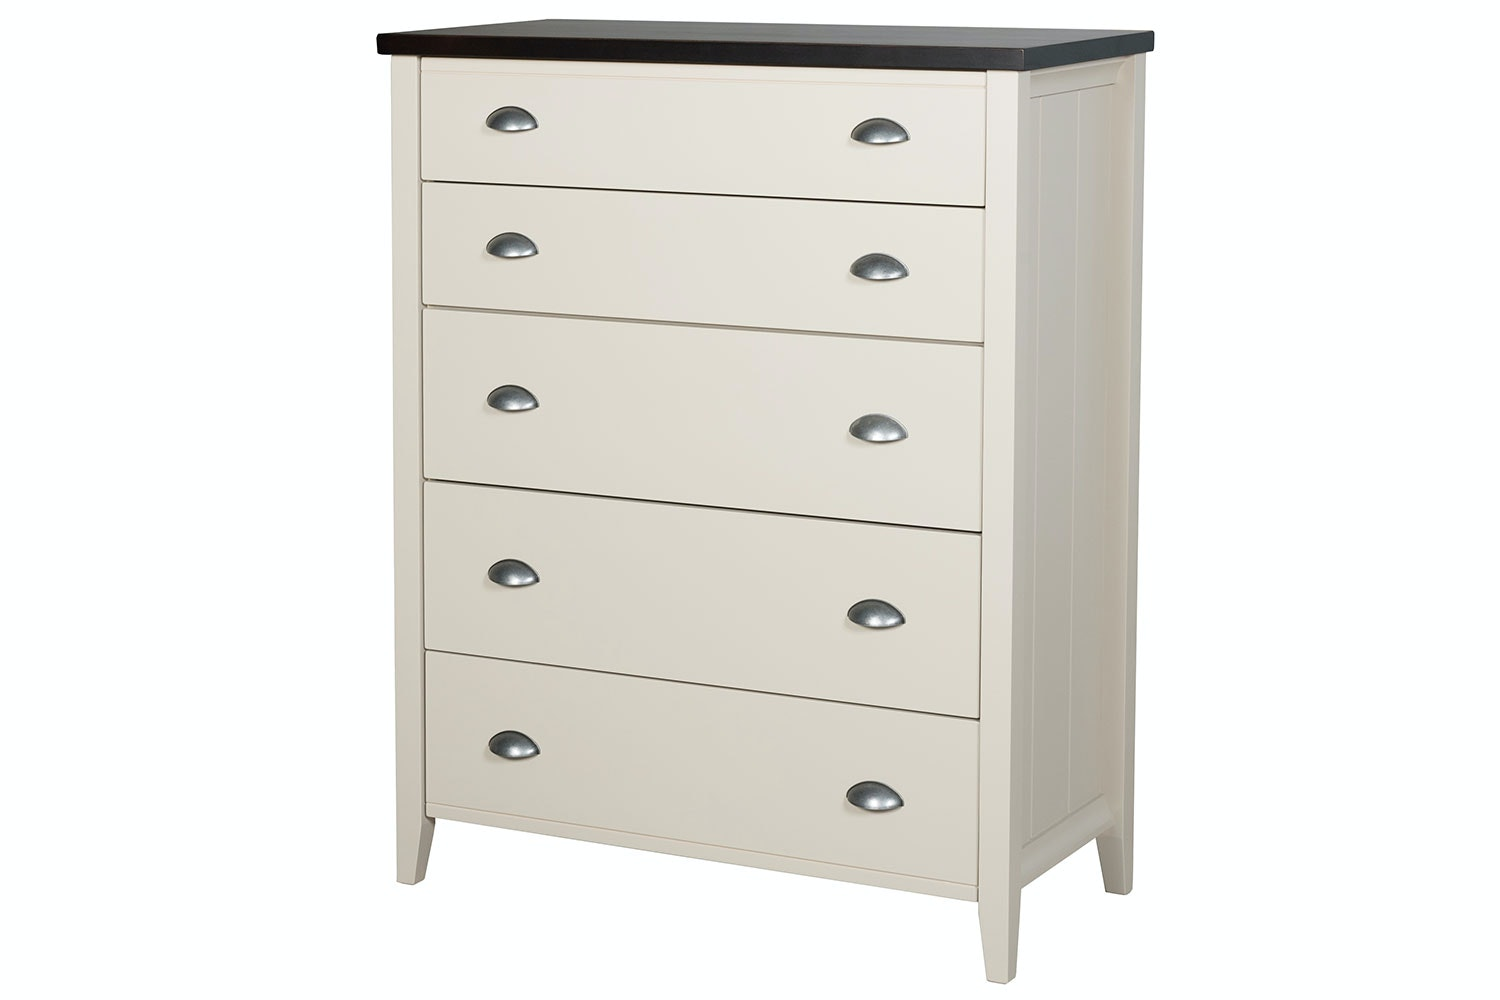 La Resta 5 Drawer Tallboy by Coastwood Furniture